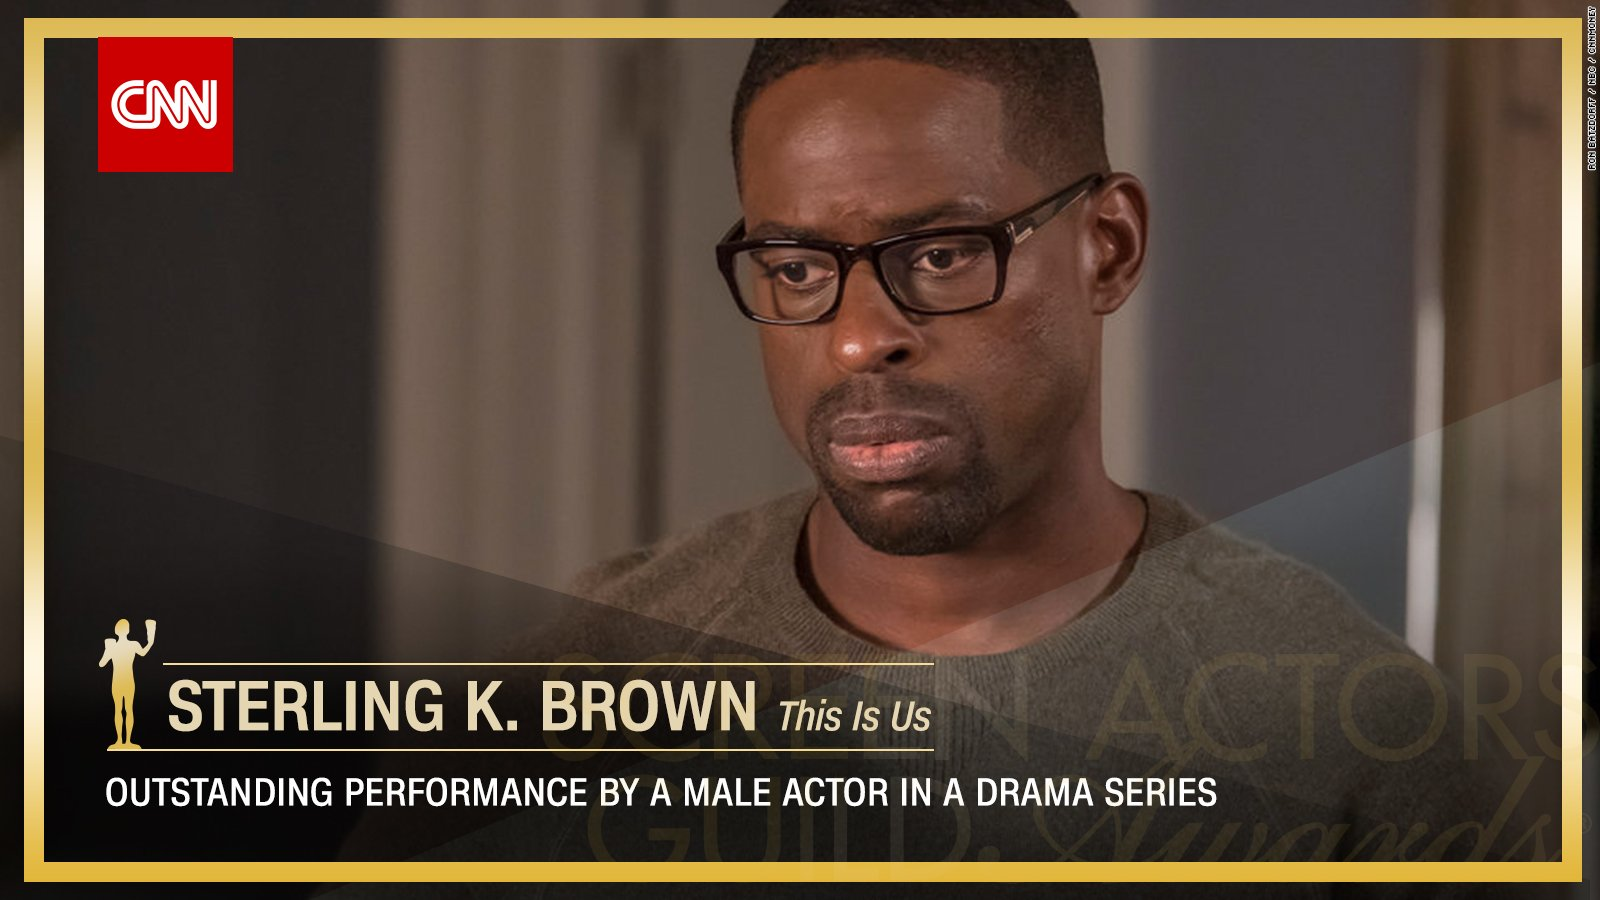 Sterling K. Brown wins Outstanding Performance by a Male Actor in a Drama Series. https://t.co/cPly9Wzl8b #SAGAwards https://t.co/awSnjf0cyJ